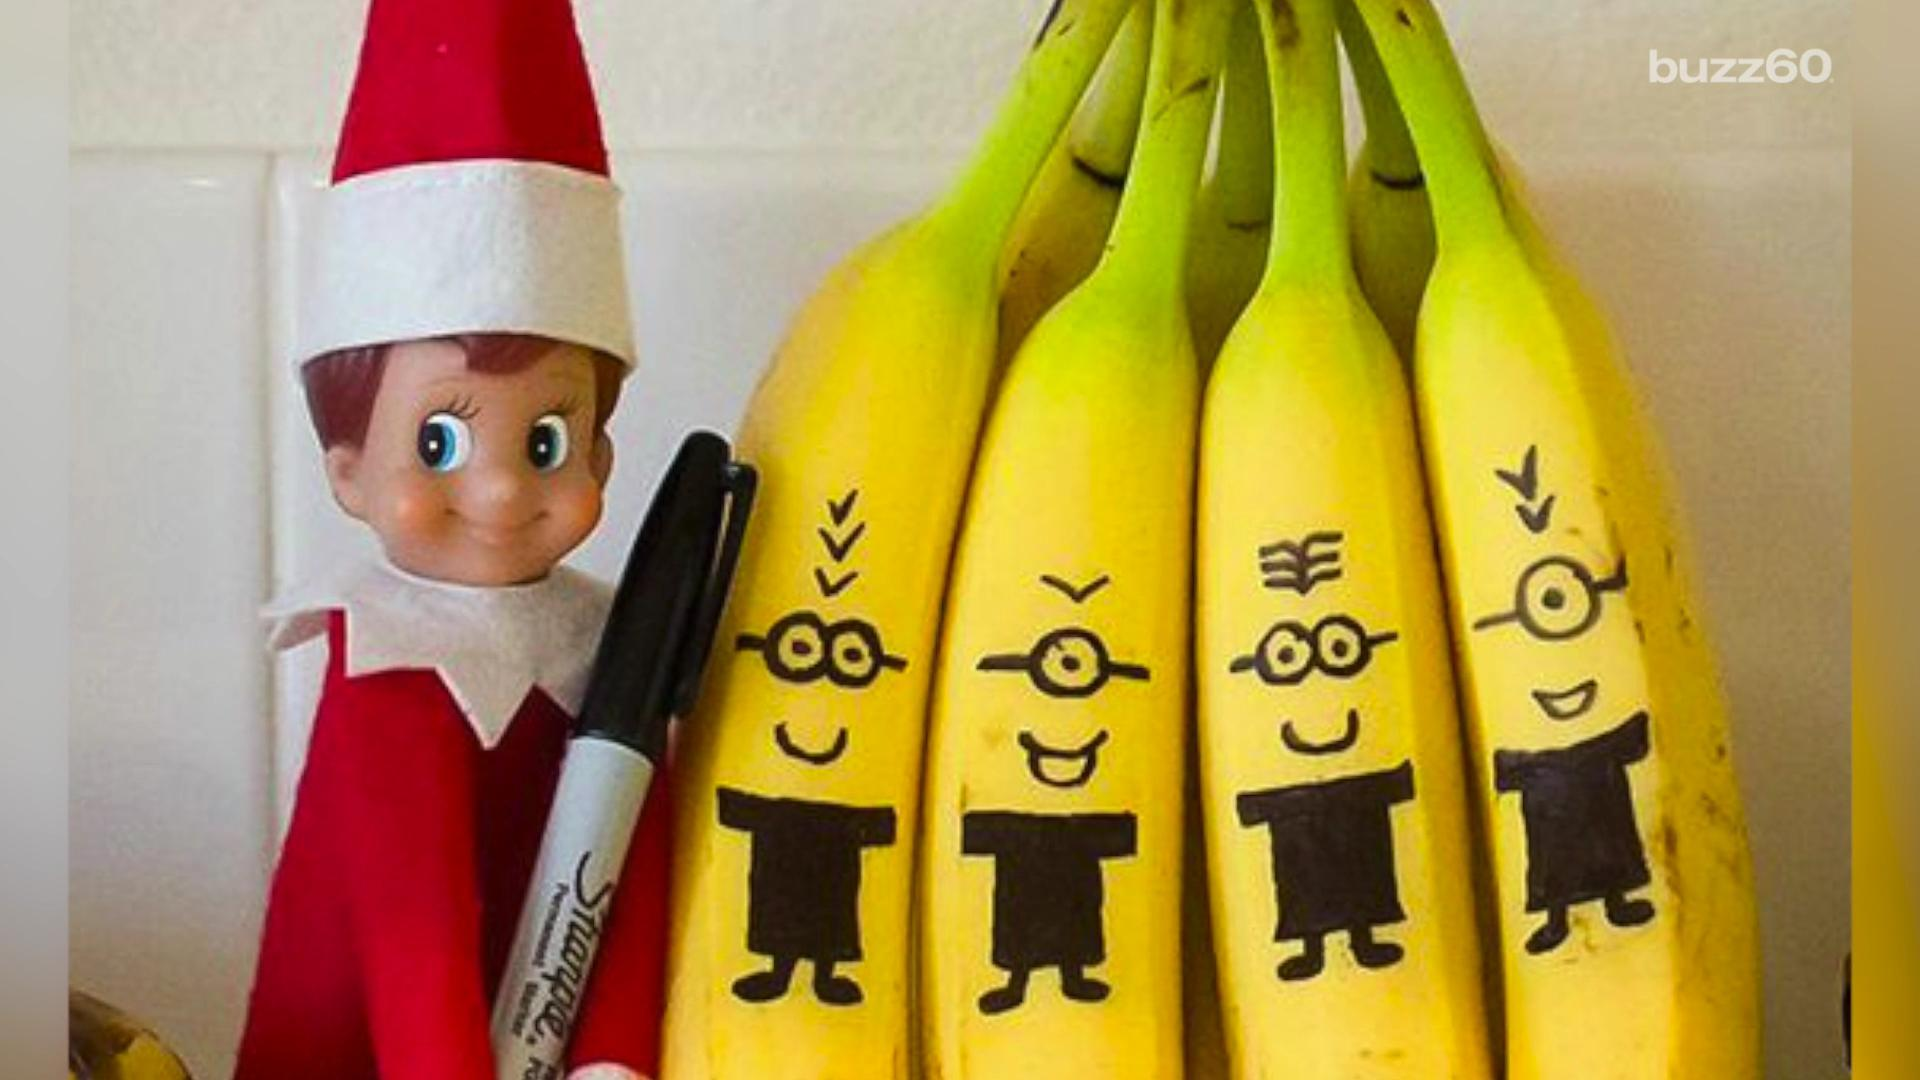 5 easy 'Elf on the Shelf' ideas that will wow your kids